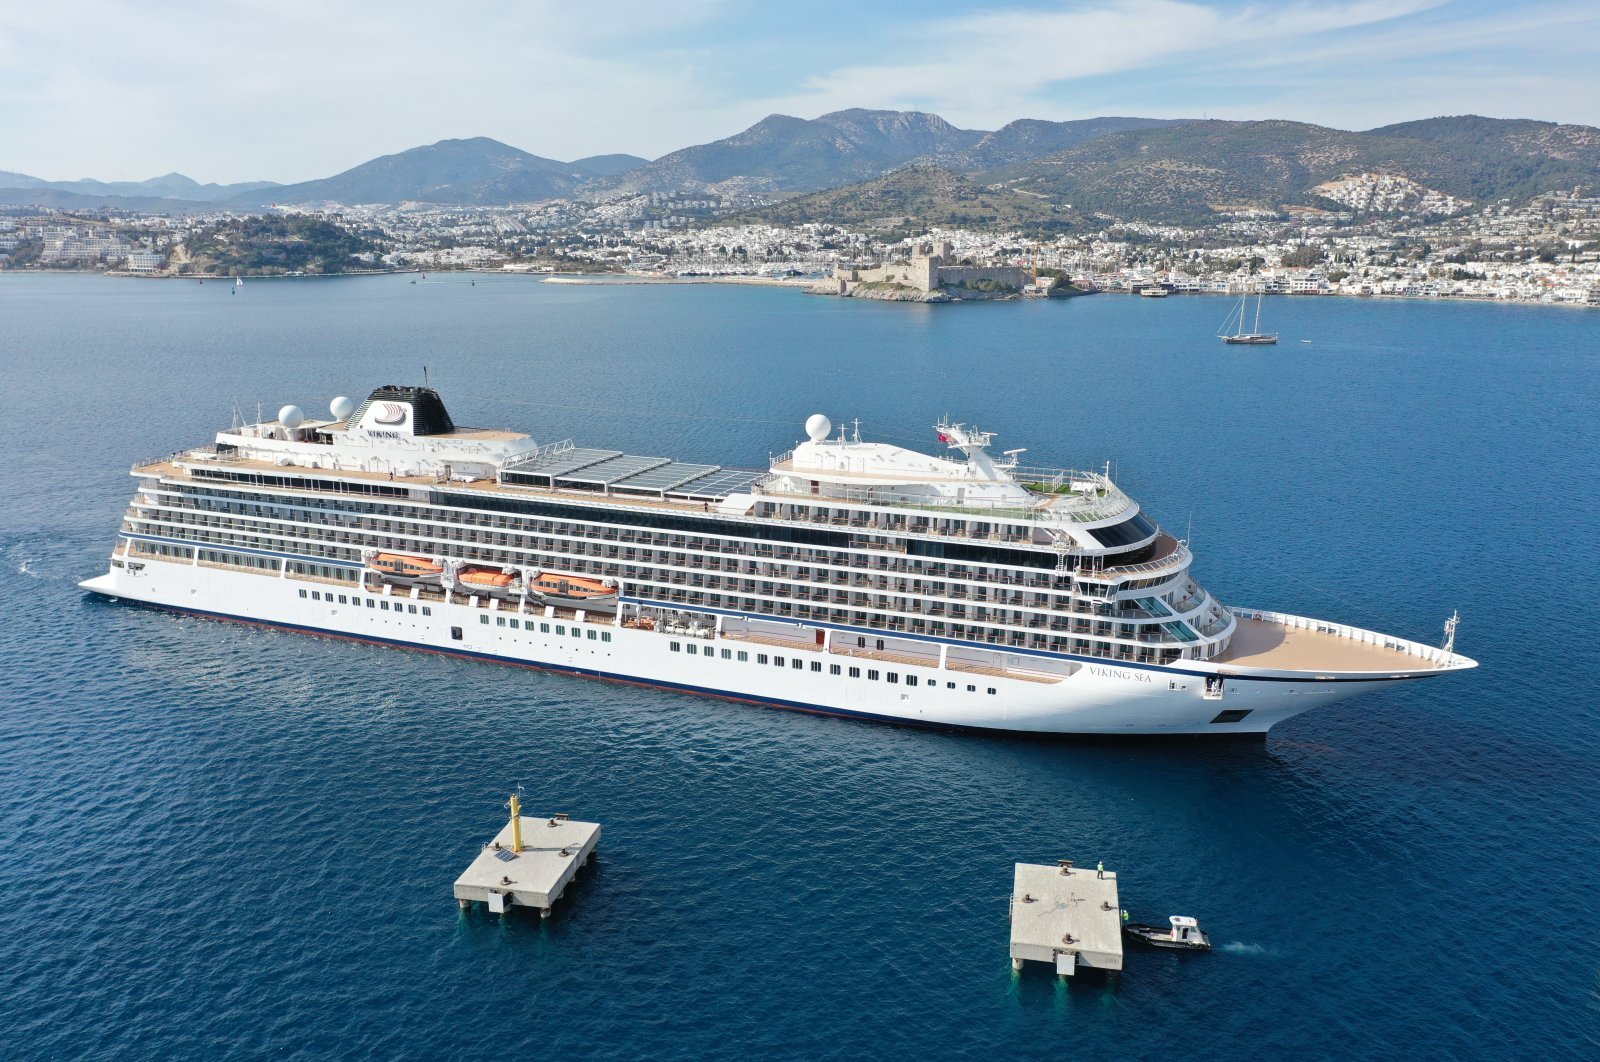 The Viking Sea cruise ship arrives in theBodum district ofsouthwestern Muğla province, Turkey, March 13, 2021. (AA Photo)